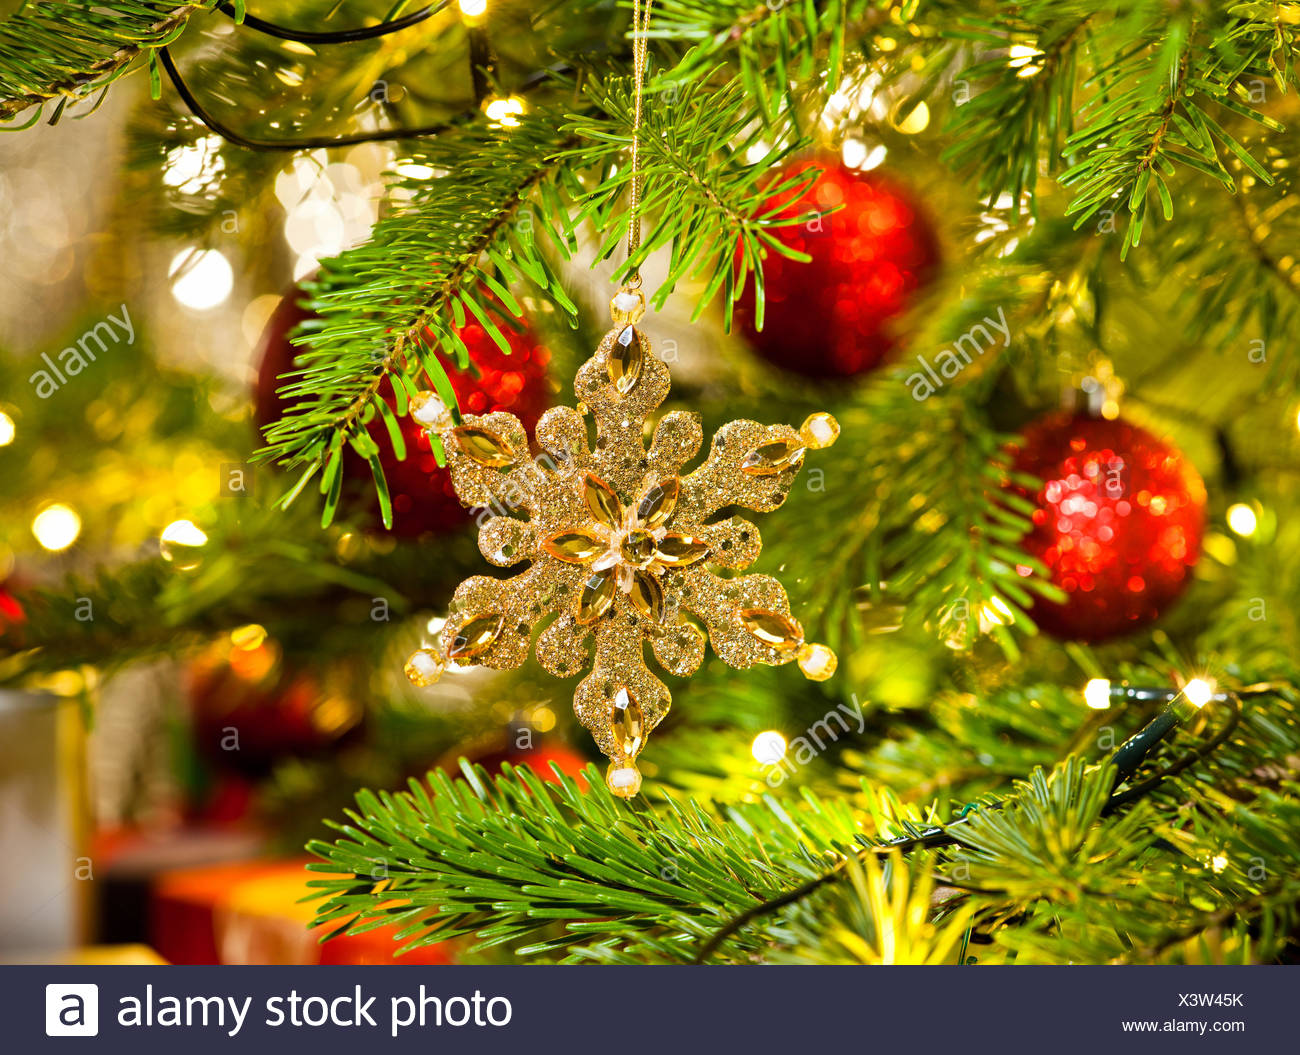 Xmas Ornament In A Real Christmas Tree In Bright Color Stock Photo Alamy